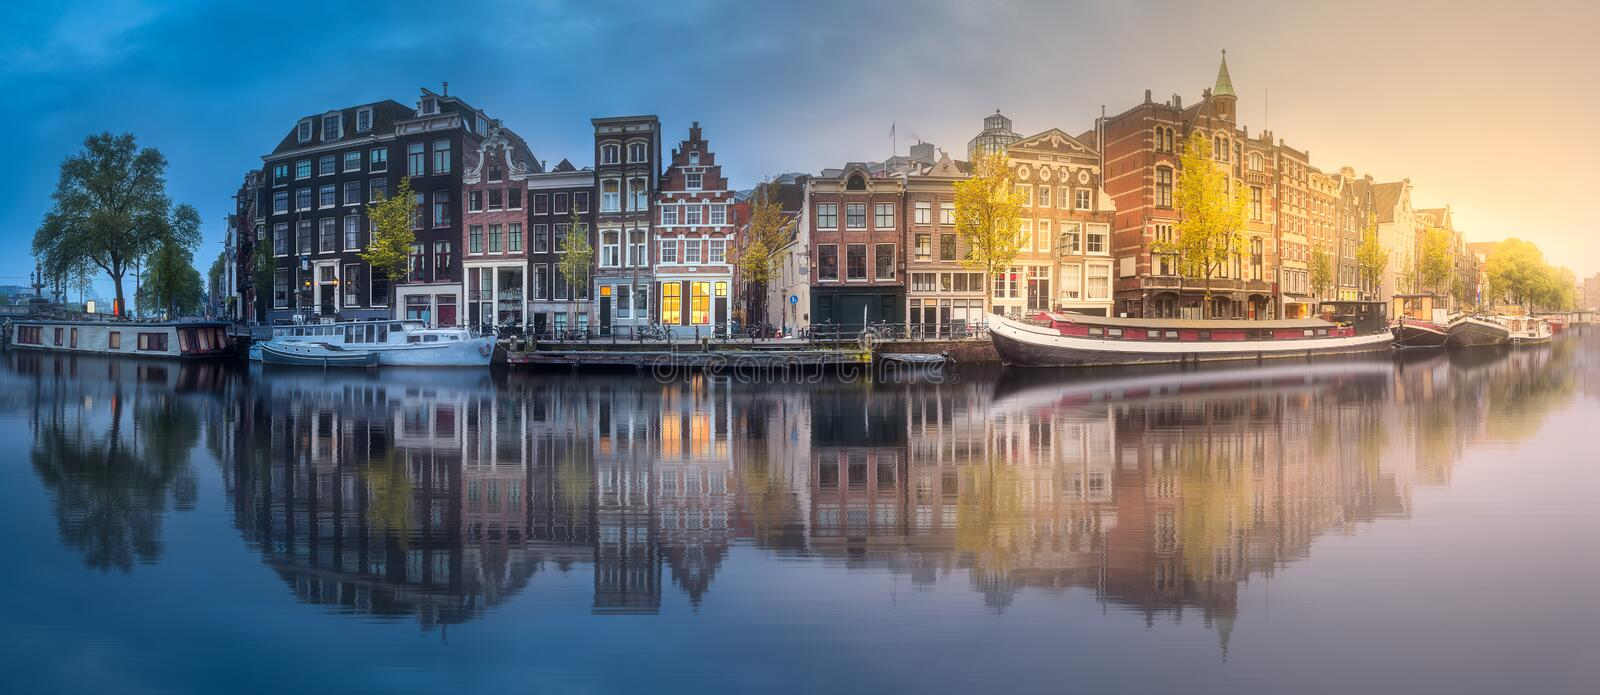 Download River, Canals And Traditional Old Houses Amsterdam Stock Photo - Image of facade, morning: 110355706